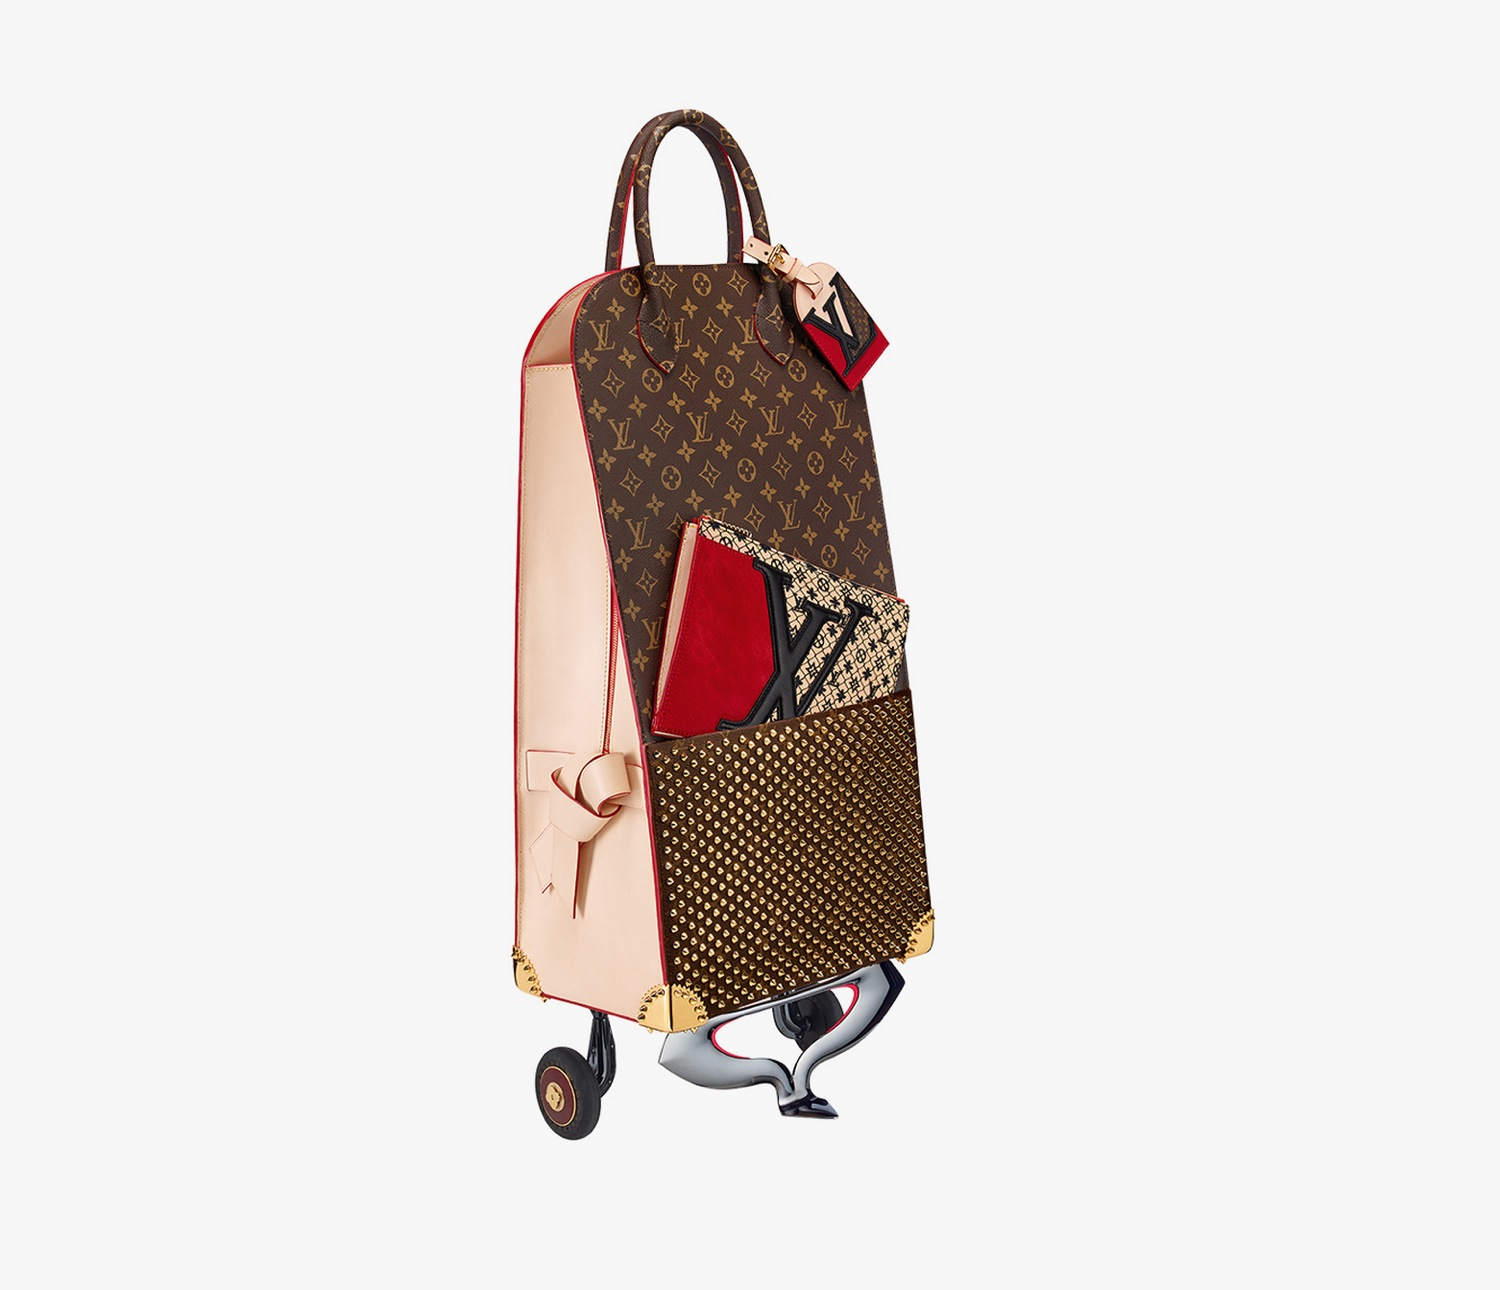 Louis Vuitton Shopping Trolley by Christian Louboutin